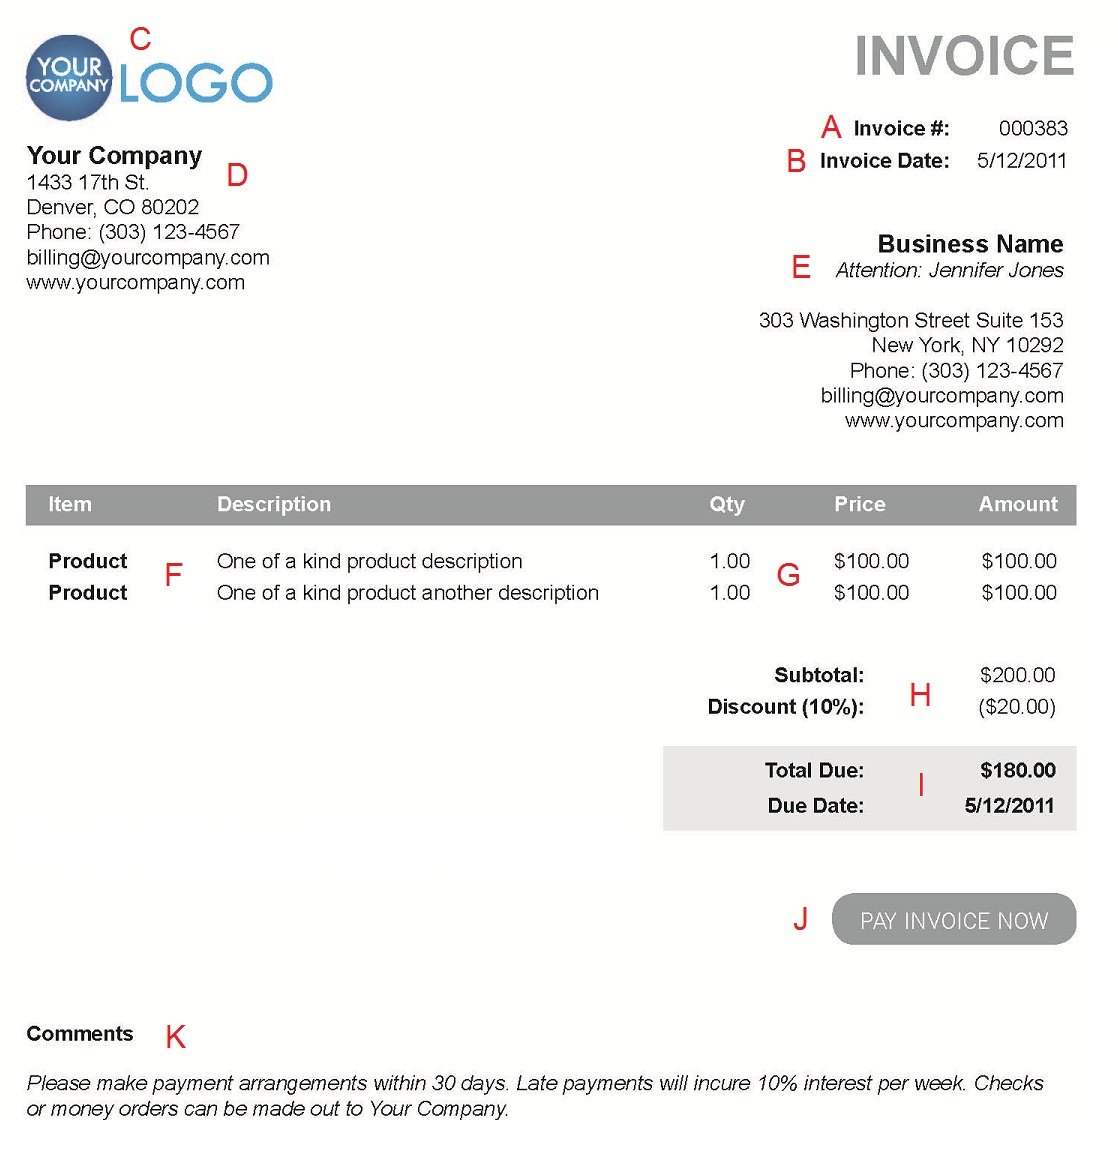 Poorboyzjeepclubus  Winsome The  Different Sections Of An Electronic Payment Invoice With Inspiring A  With Amusing What Is The Dealer Invoice Price Also Invoice What Is In Addition Process Invoices And Blank Invoices To Print As Well As Invoice Email Message Additionally Monthly Invoice From Paysimplecom With Poorboyzjeepclubus  Inspiring The  Different Sections Of An Electronic Payment Invoice With Amusing A  And Winsome What Is The Dealer Invoice Price Also Invoice What Is In Addition Process Invoices From Paysimplecom